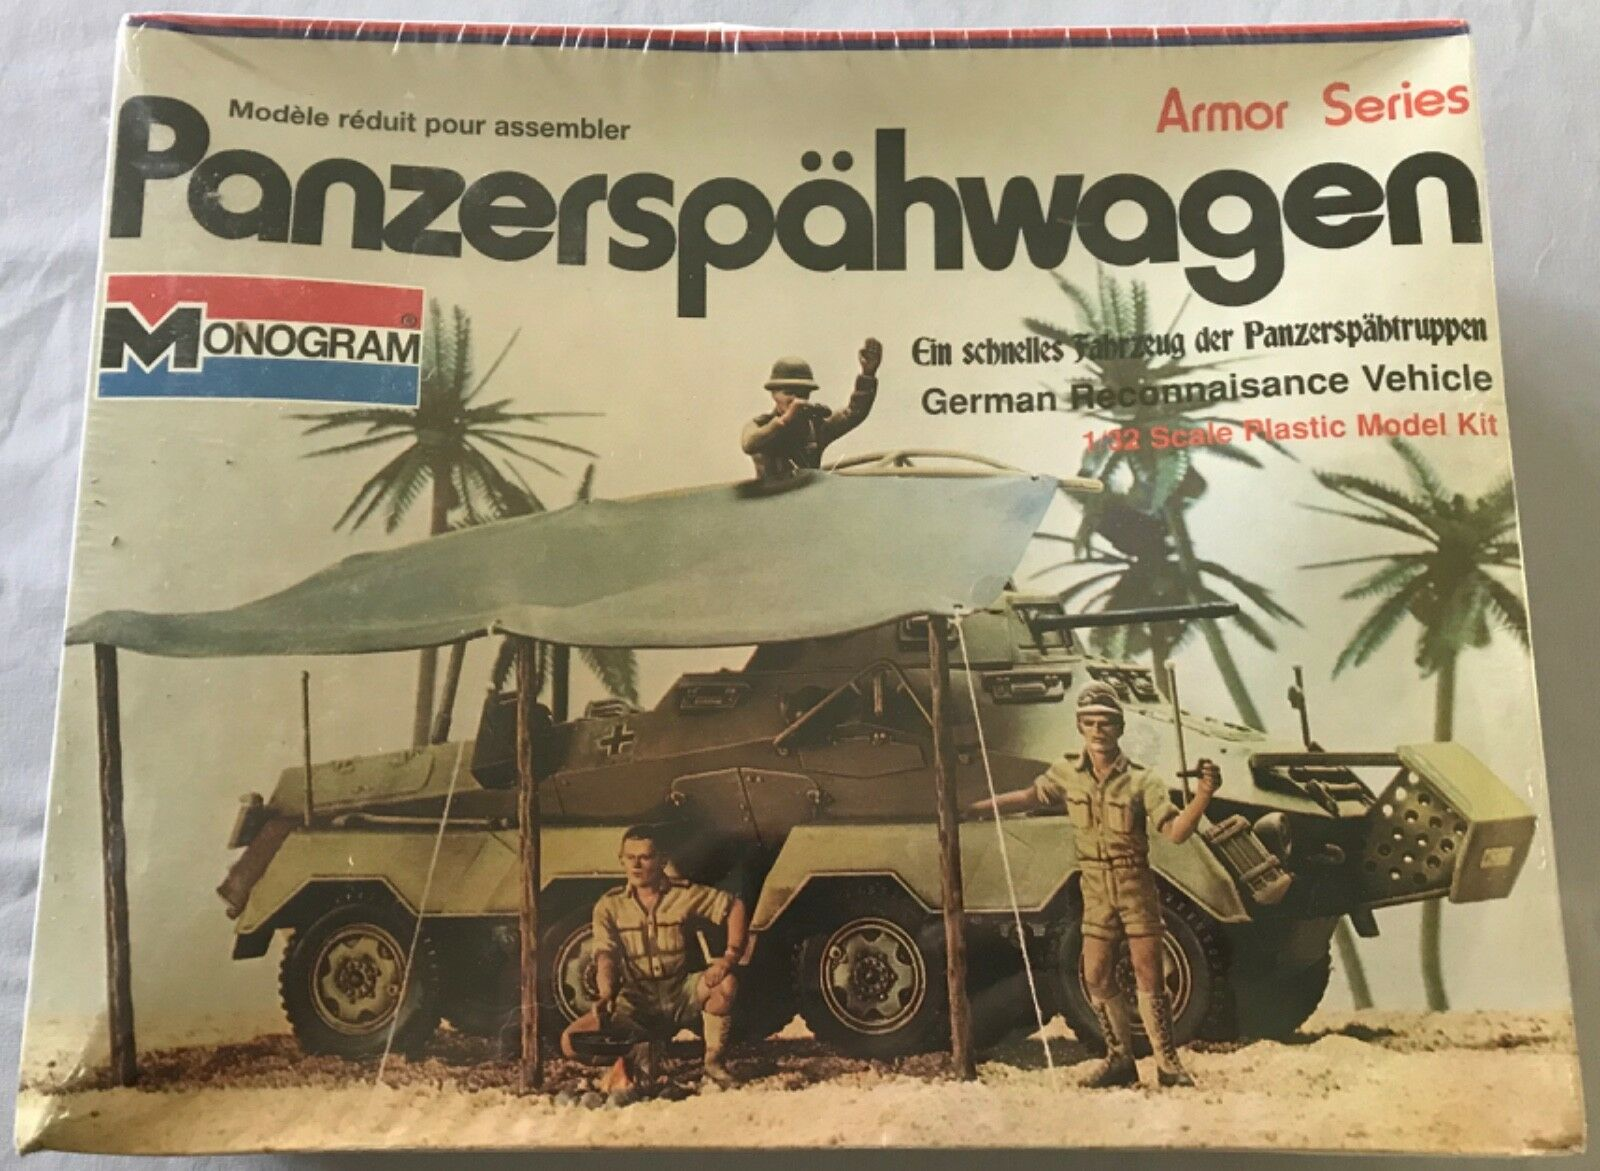 Monogram Panzerspahwagen German Reconnaisance Vehicle 1 32 FS 'Sullys Hobbies'